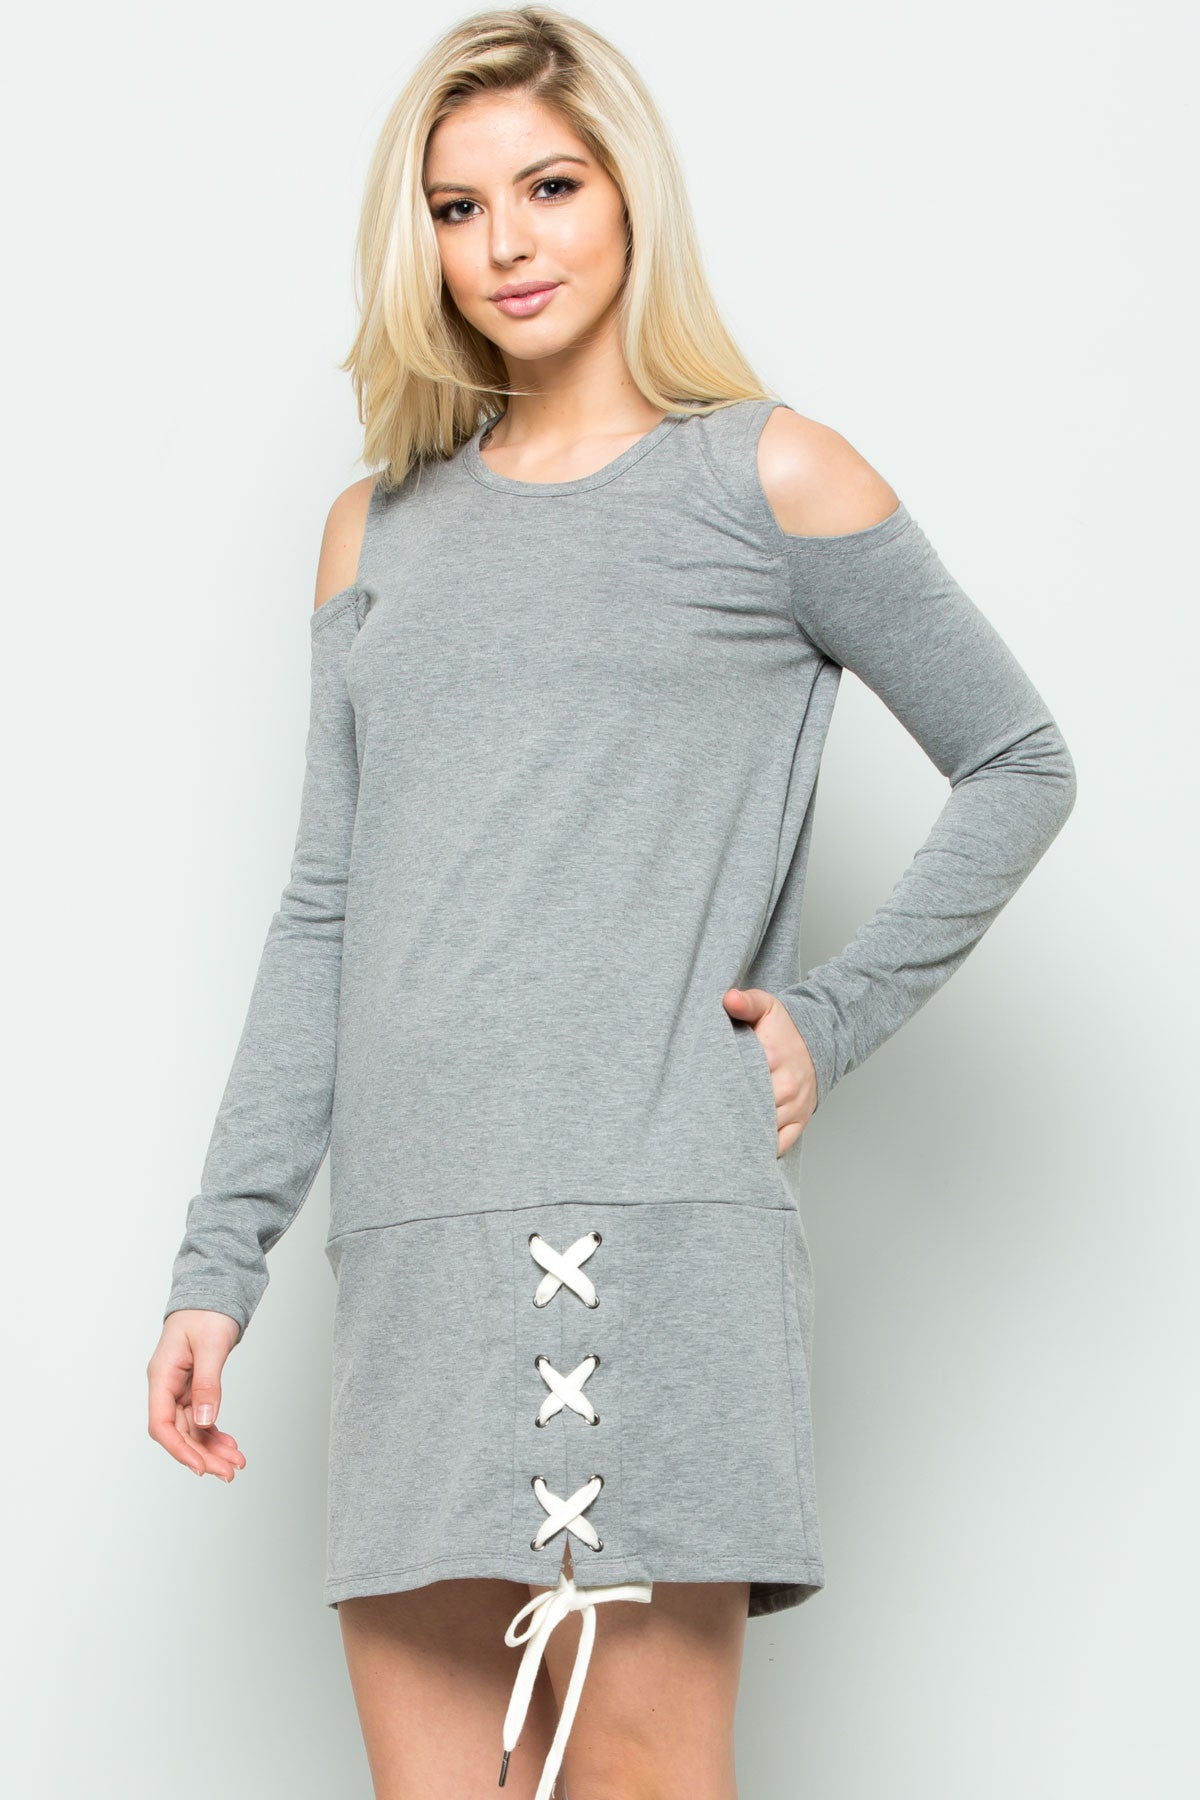 Cold Shoulder Lace Up Sweater Dress in Heather Grey - Dresses - My Yuccie - 2